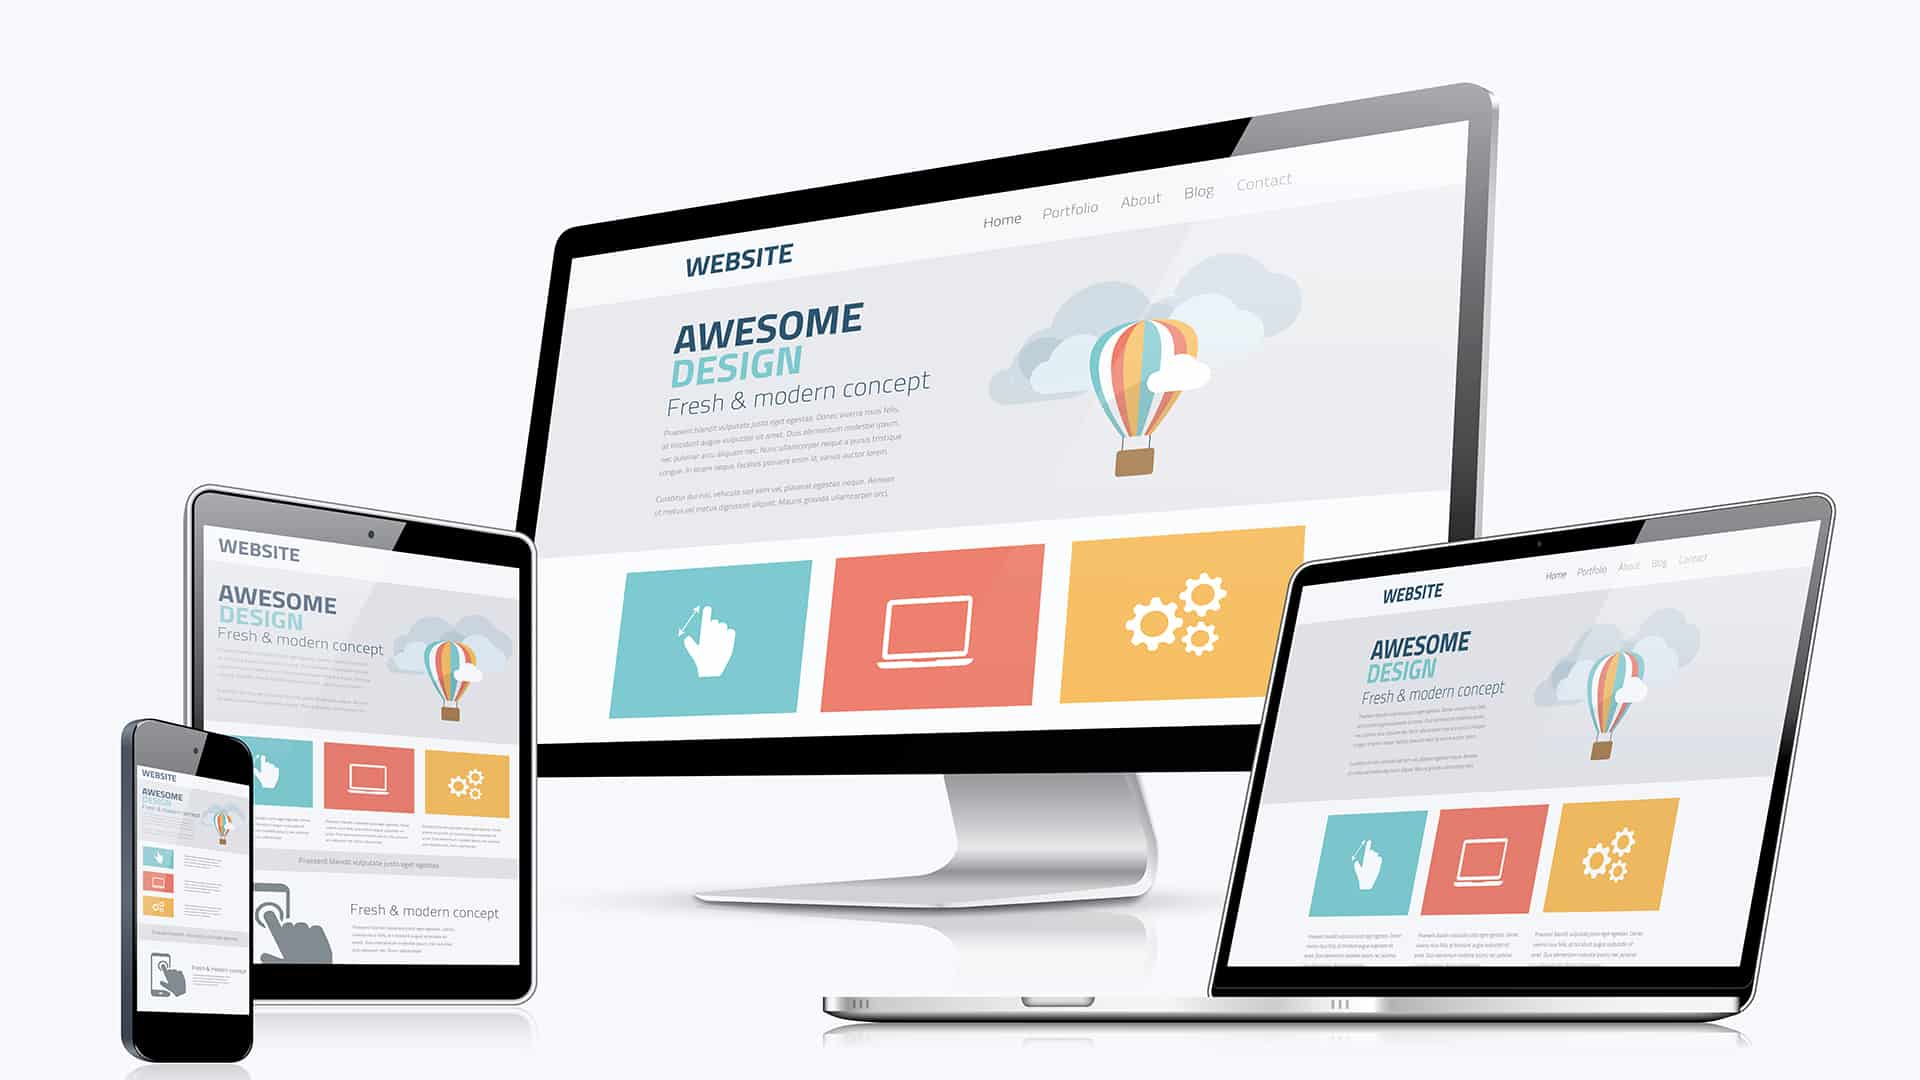 design-awesome-website